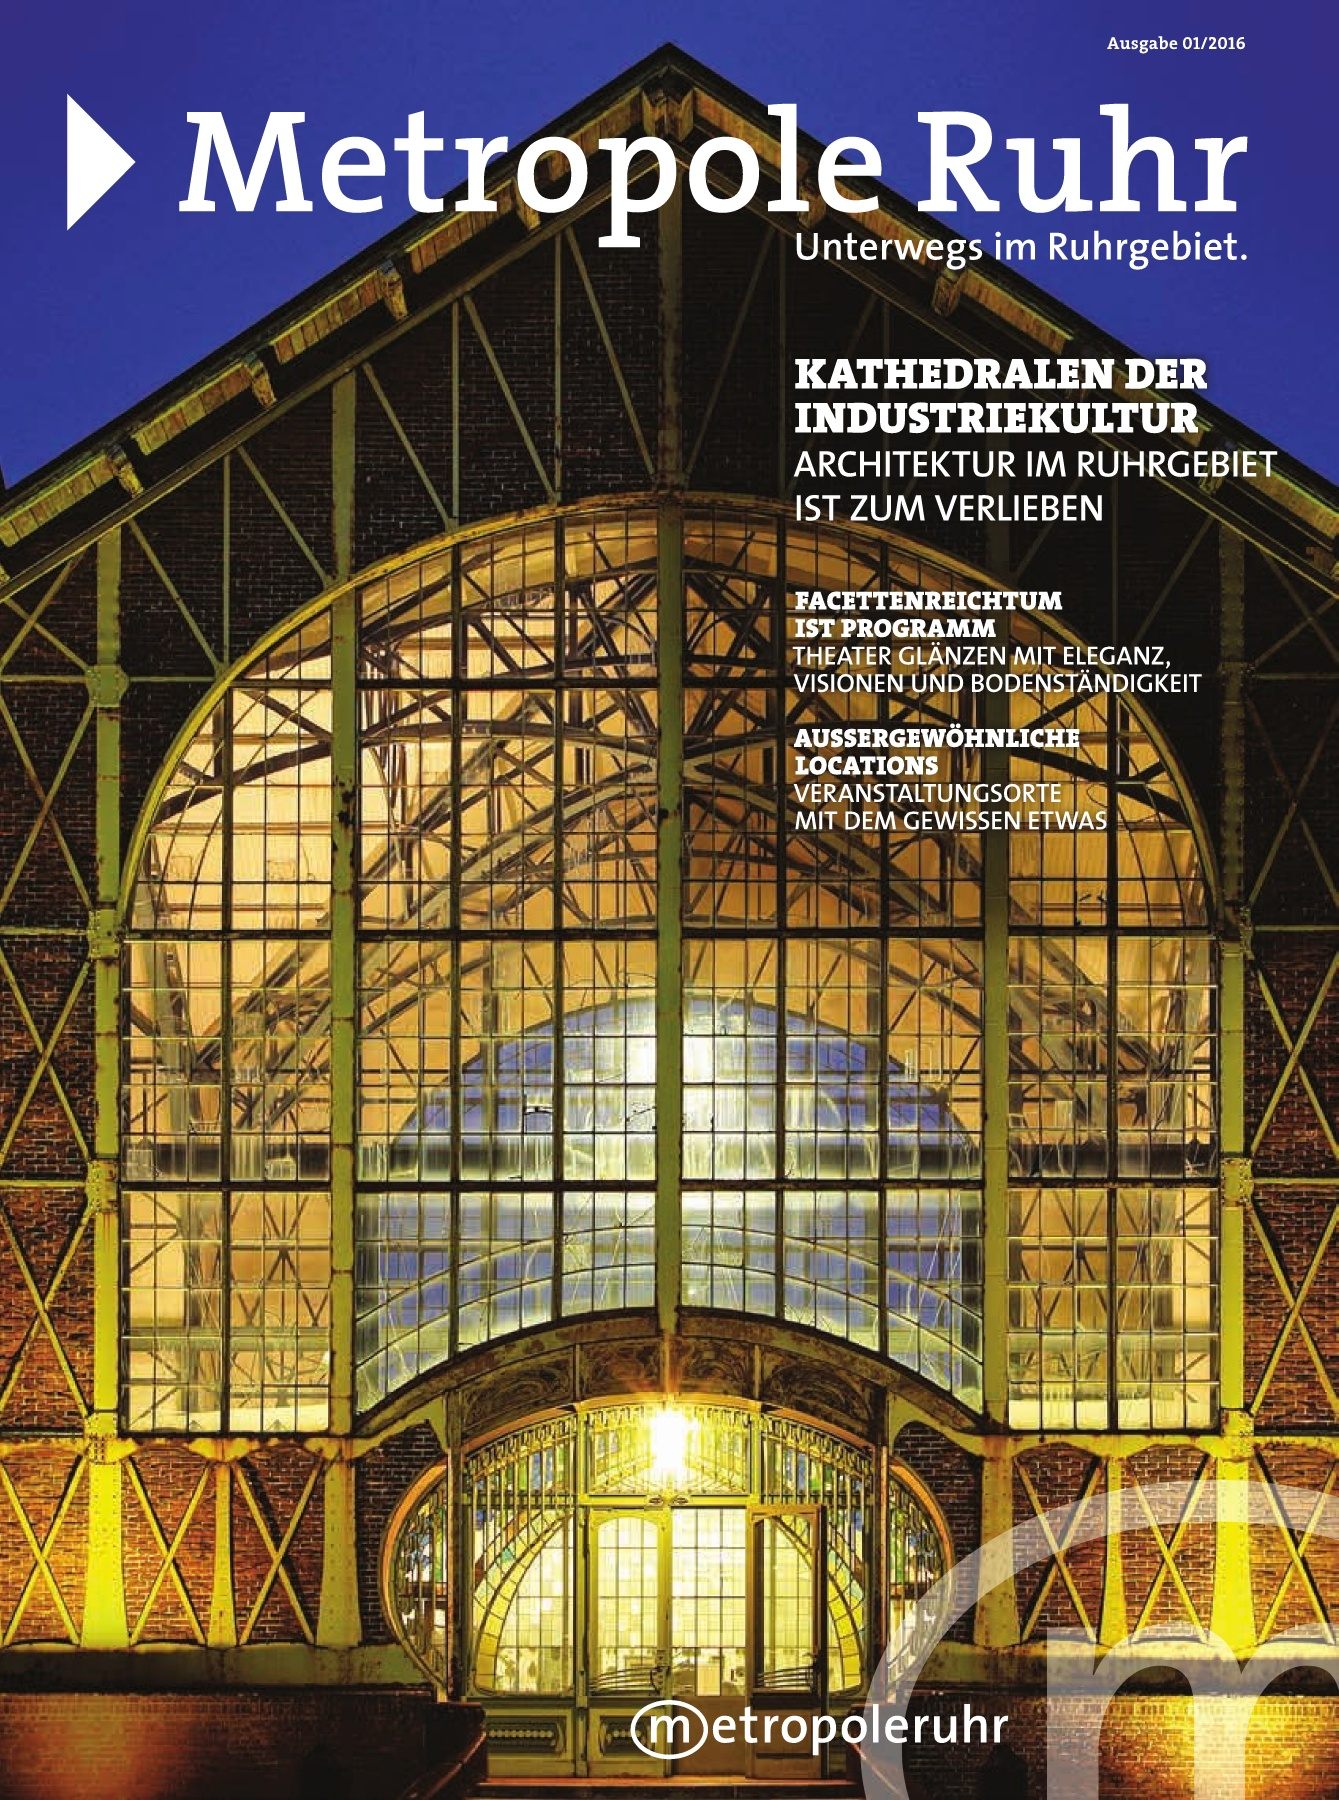 Guide Michelin Am Kamin Mülheim Metropole Ruhr Magazin 01 2016 Pages 1 32 Text Version Anyflip